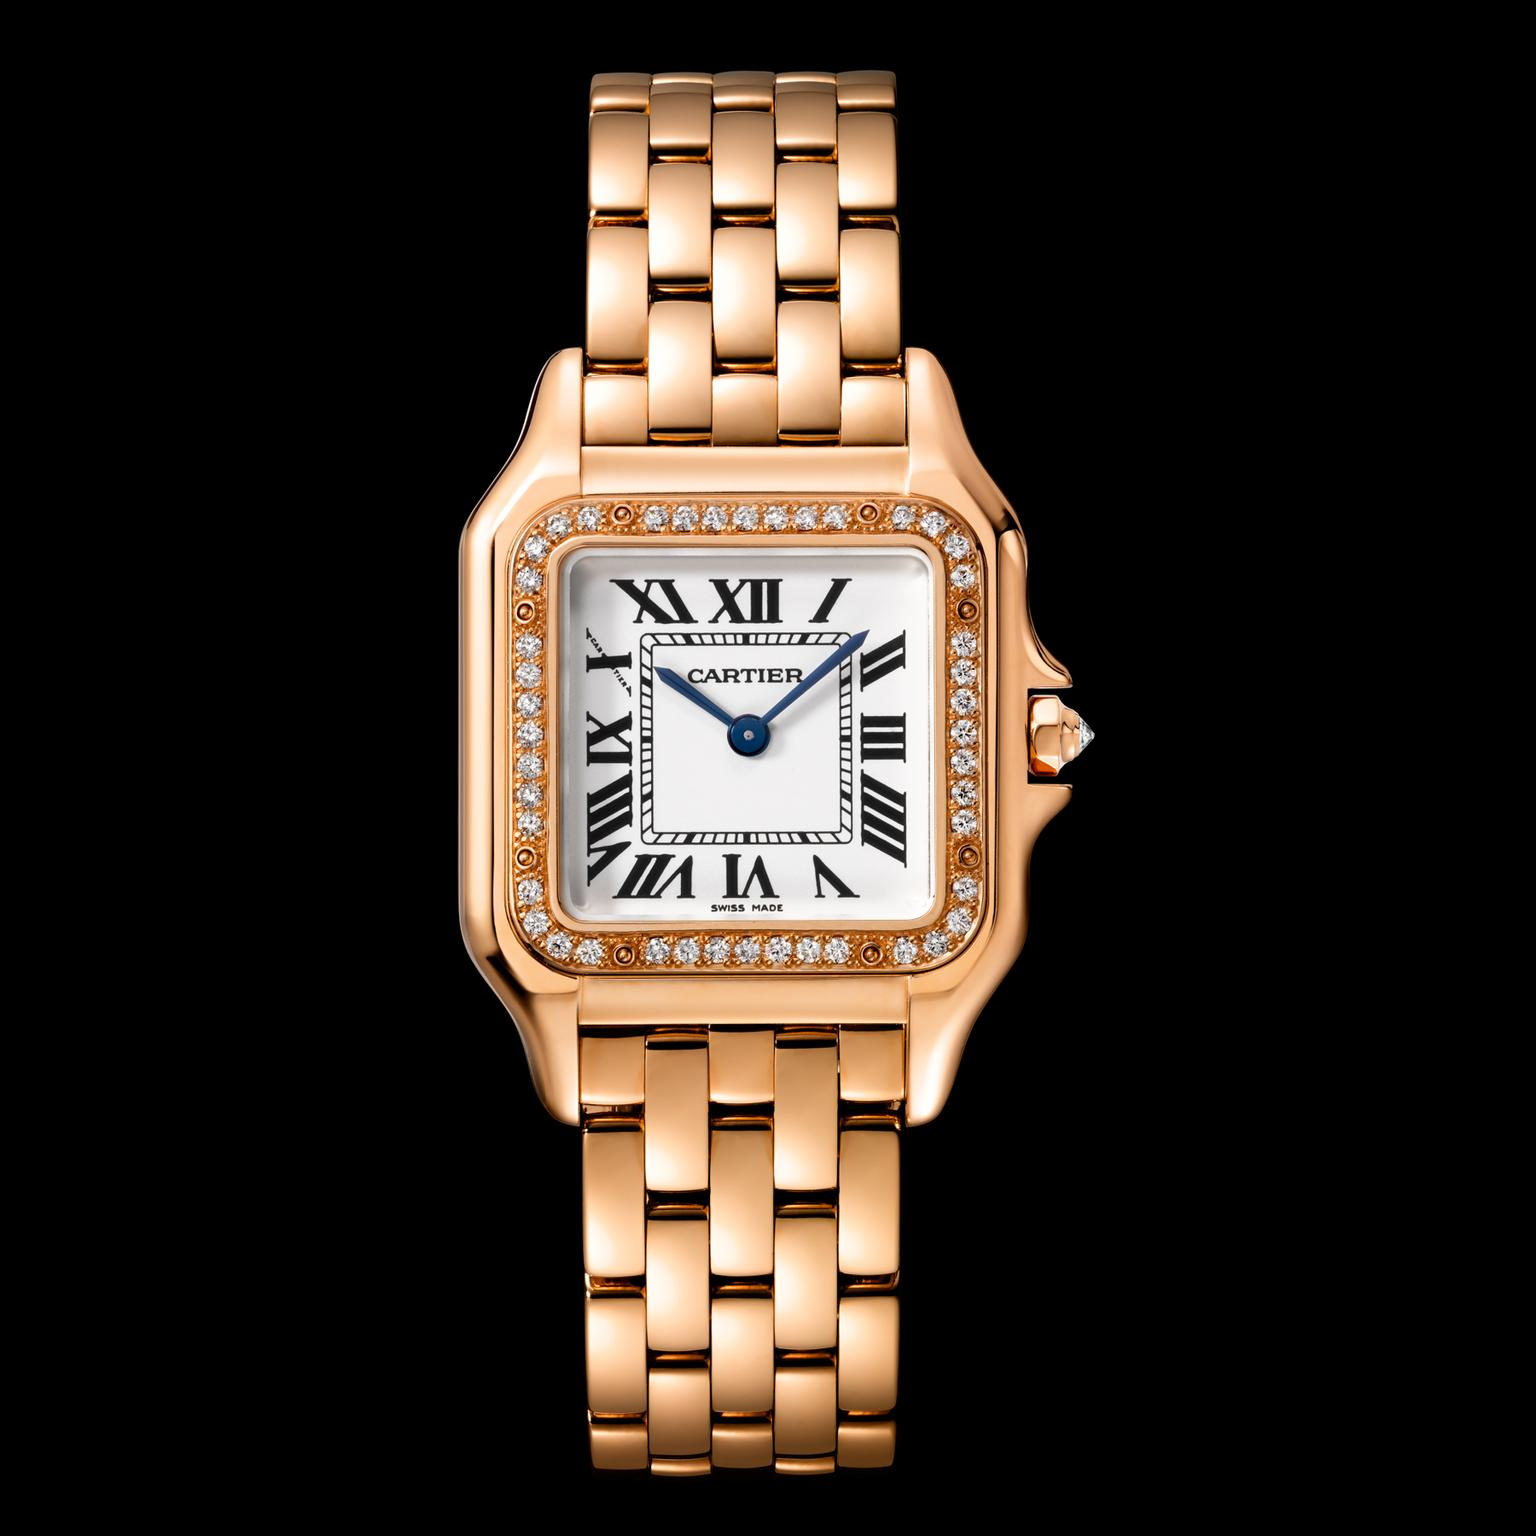 Medium size Panth    re de Cartier watch in rose gold with diamonds     Medium size Panth    re de Cartier watch in rose gold